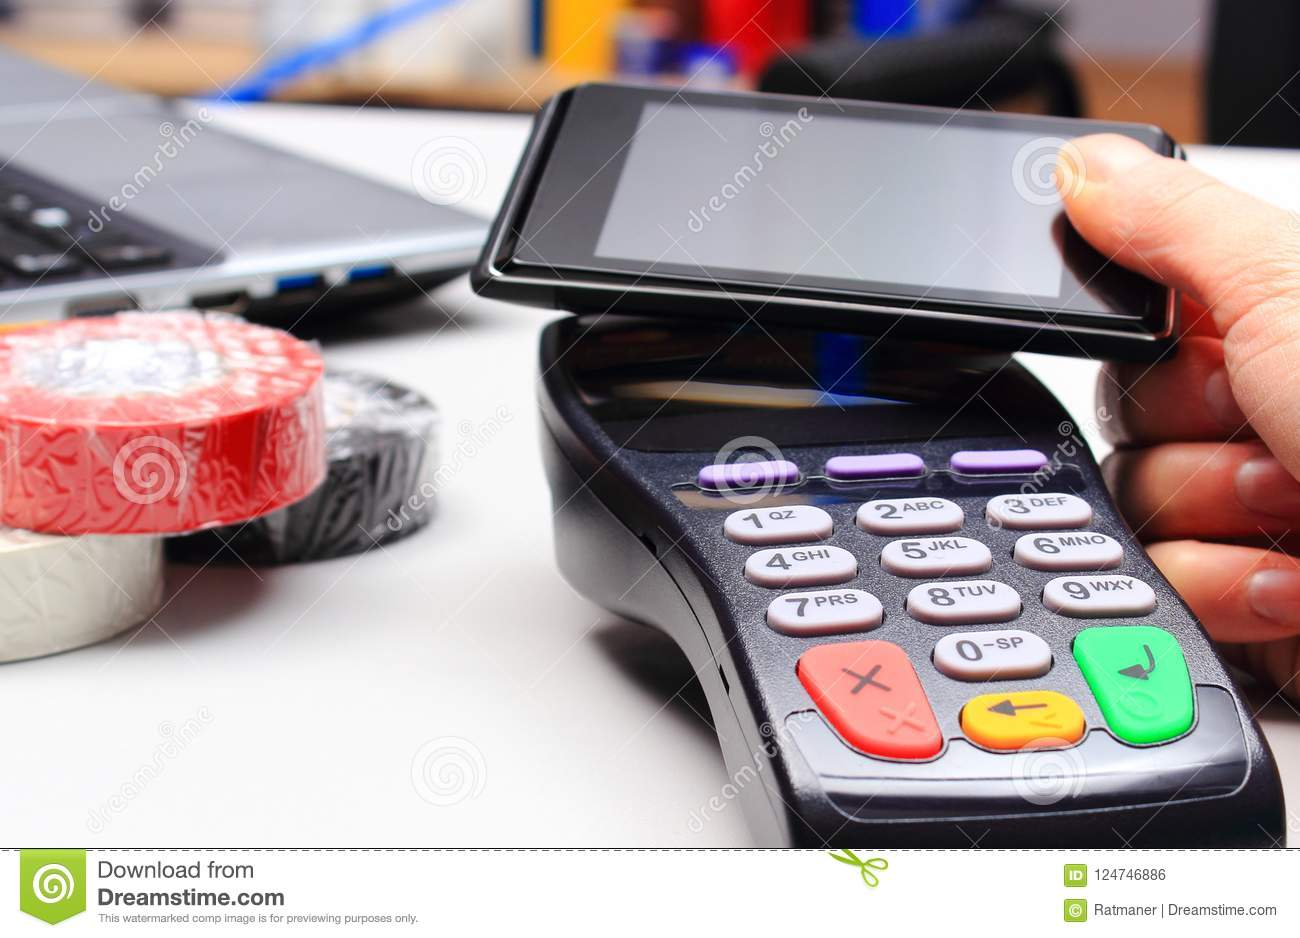 Hand of woman paying with credit card reader and mobile phone with NFC technology